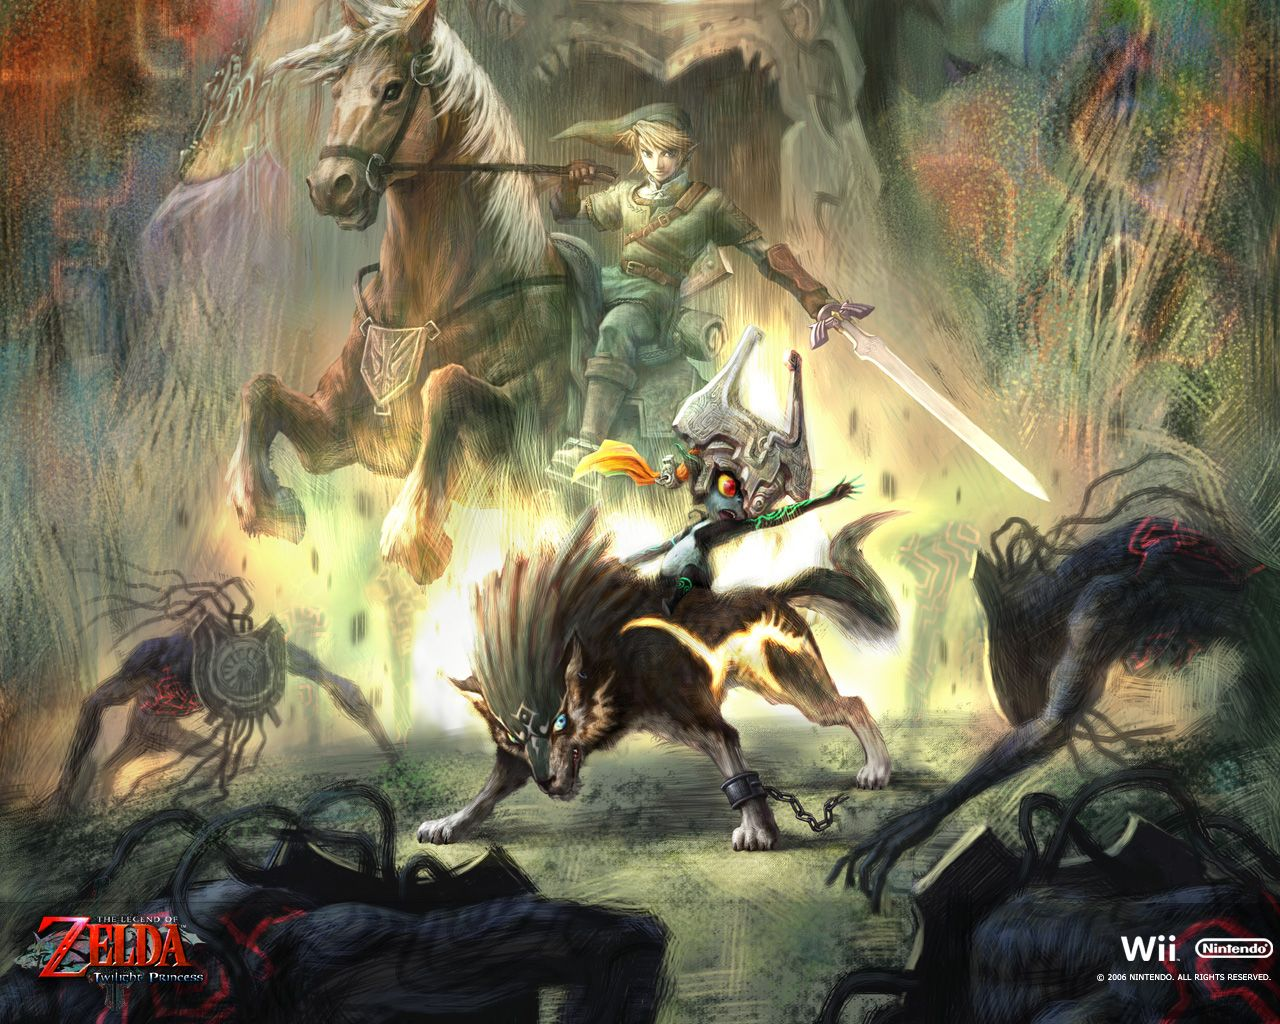 Action-packed artwork from The Legend of Zelda: Twilight Princess (available on Wii and GameCube)